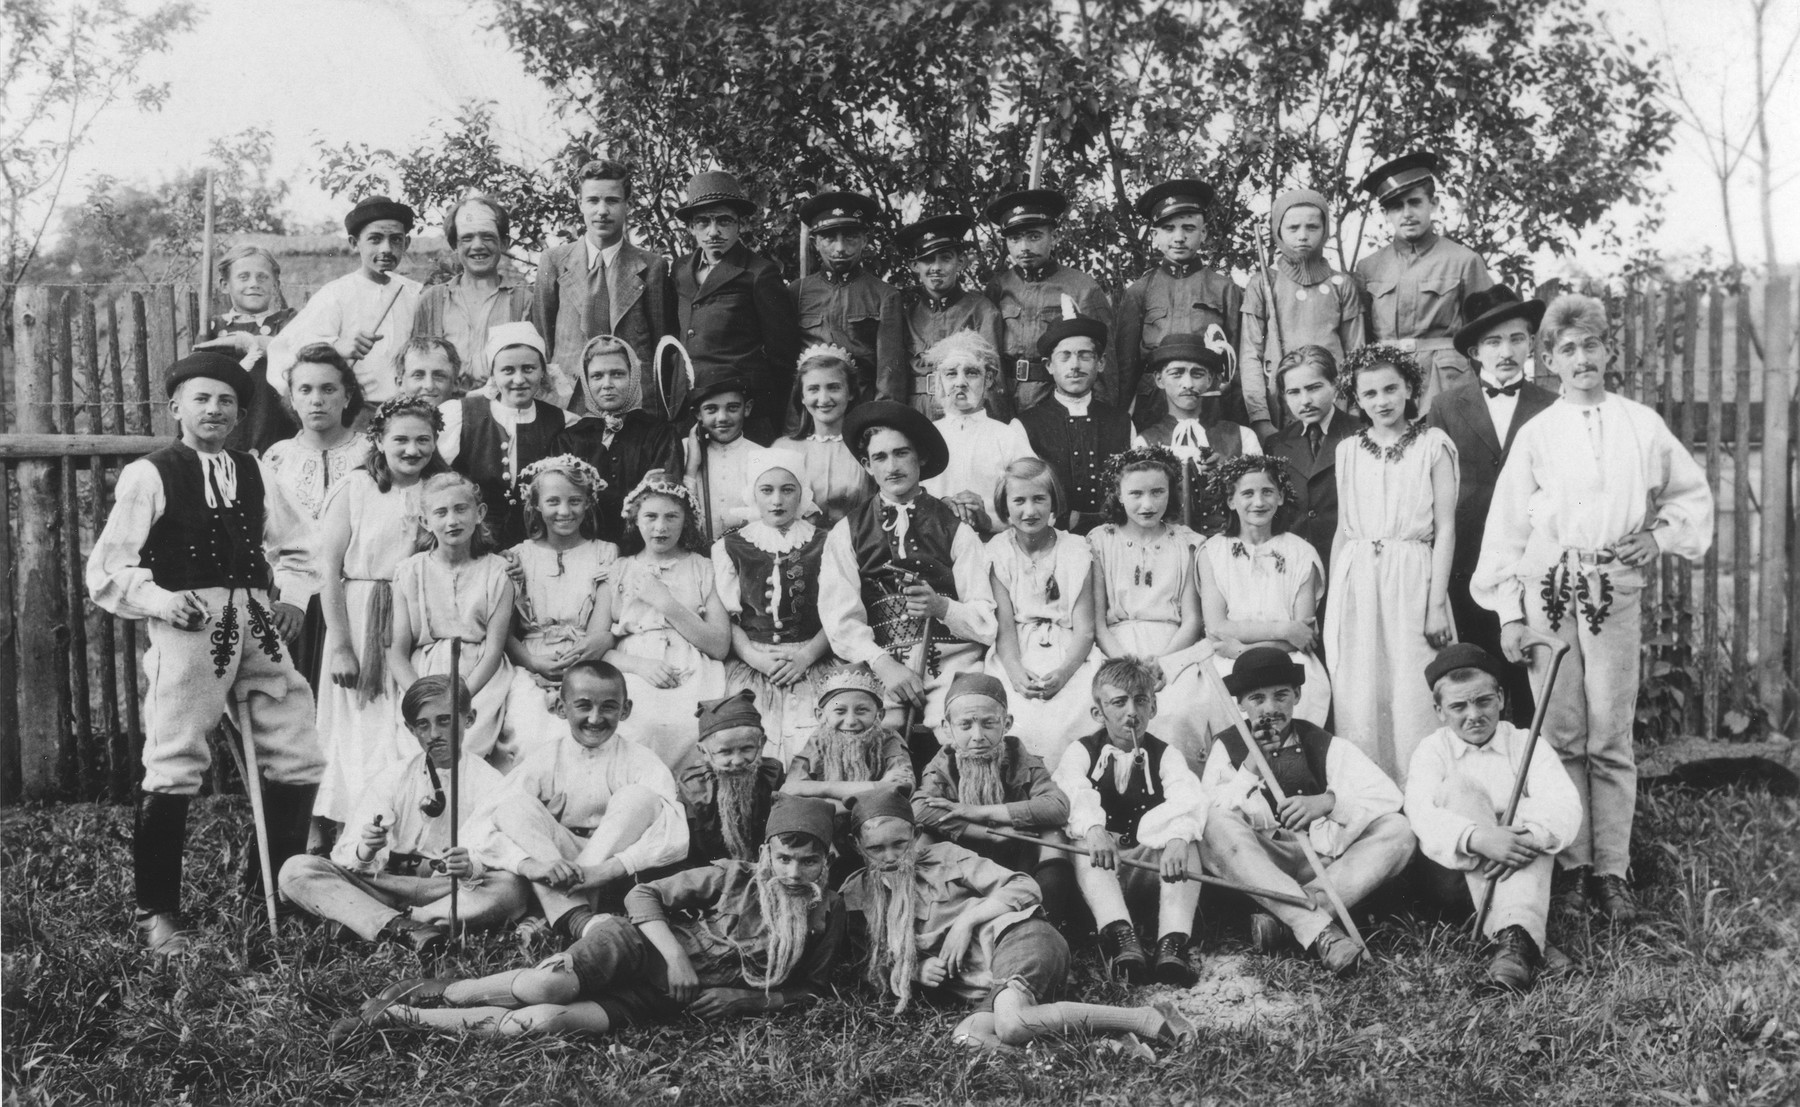 Group portrait of children and teachers at the Myjava public school dressed up in costumes.  Among those pictured is Magdalena Beck (third row from the front, third from the left).